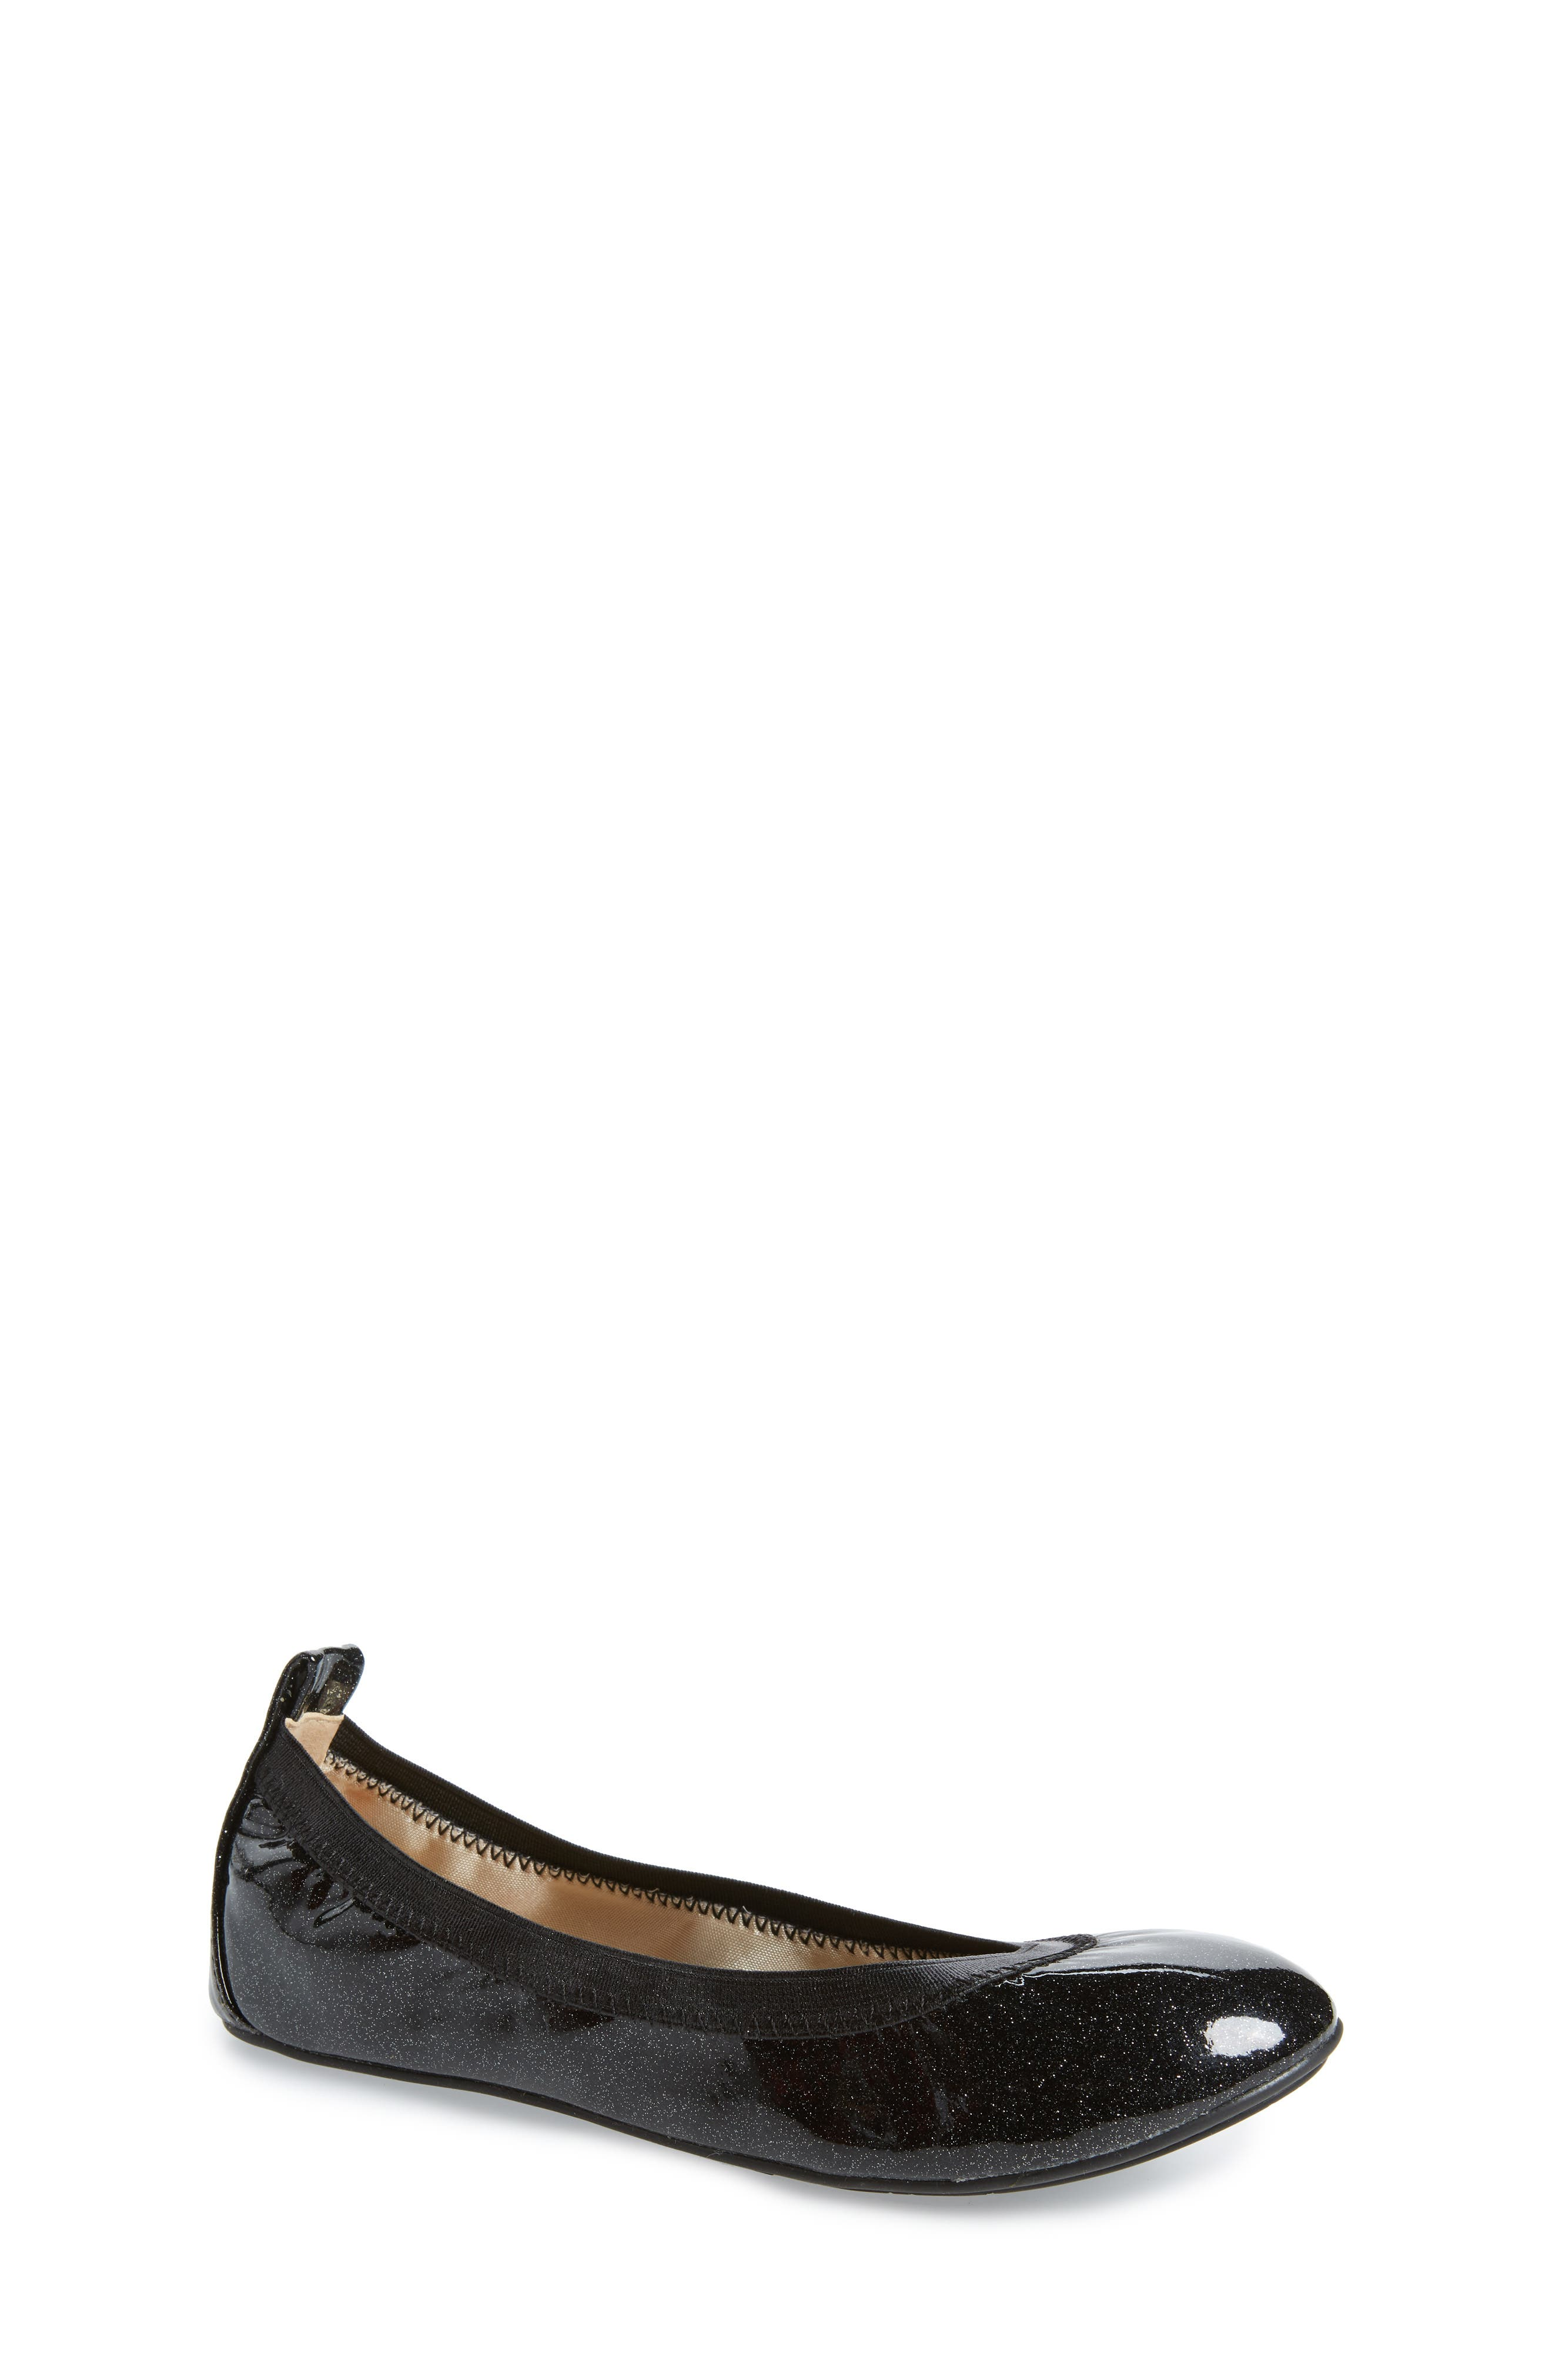 Miss Samara Ballet Flat,                         Main,                         color, BLACK PATENT GLITTER